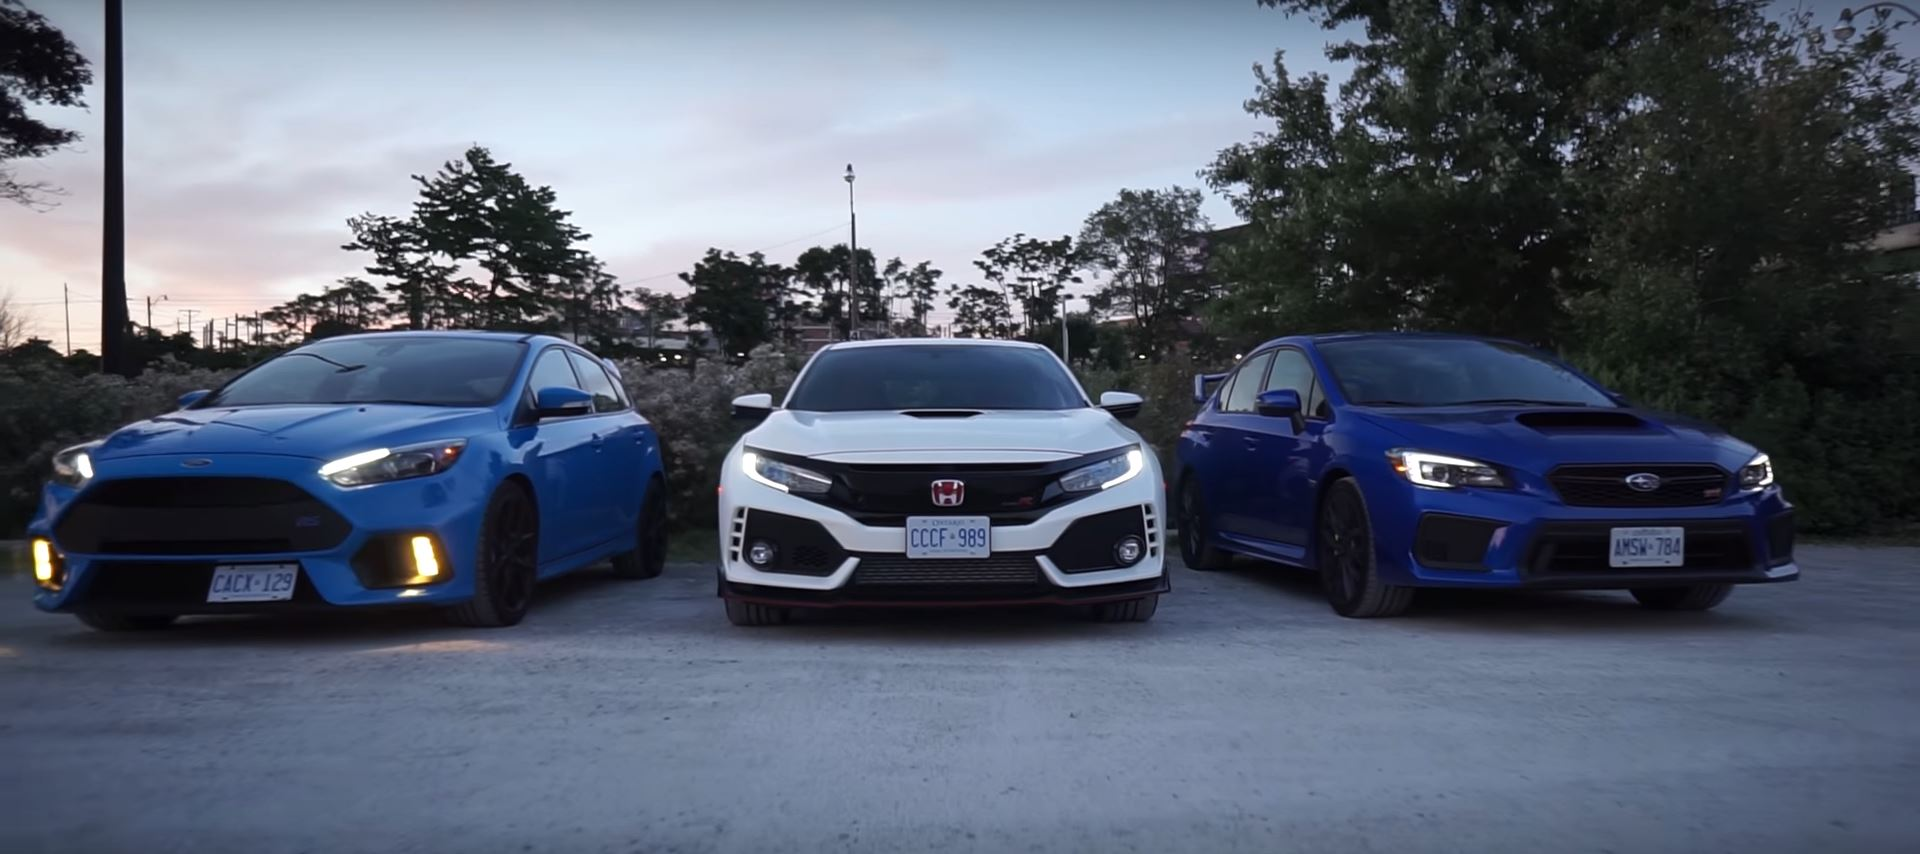 Ford Focus Rs Vs Sti >> Ford Focus RS Meets 2018 Honda Civic Type R and 2018 Subaru WRX STI - autoevolution